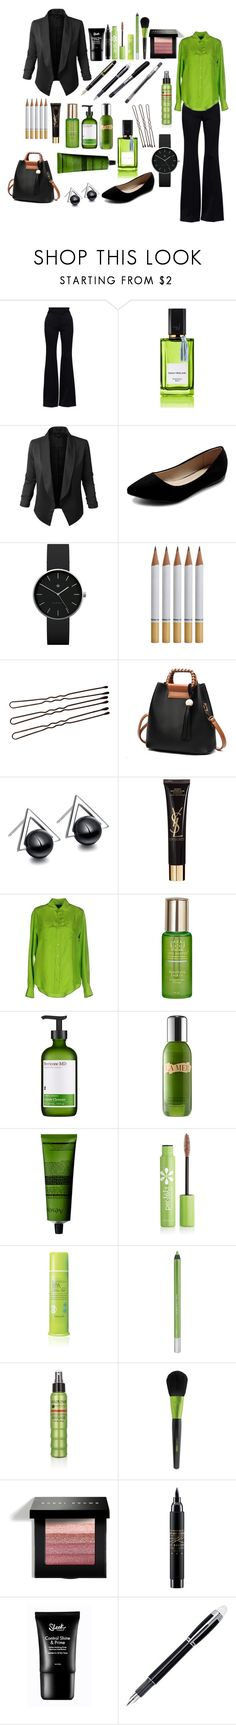 """""""Work Chic - Bold Beauty"""" by foreverdecadent ❤ liked on Polyvore featuring Alexander McQueen, Diana Vreeland, Jupe de Abby, Ollio, Newgate, Yves Saint Laurent, Ralph Lauren Black Label, Tata Harper, Perricone MD and Aesop"""